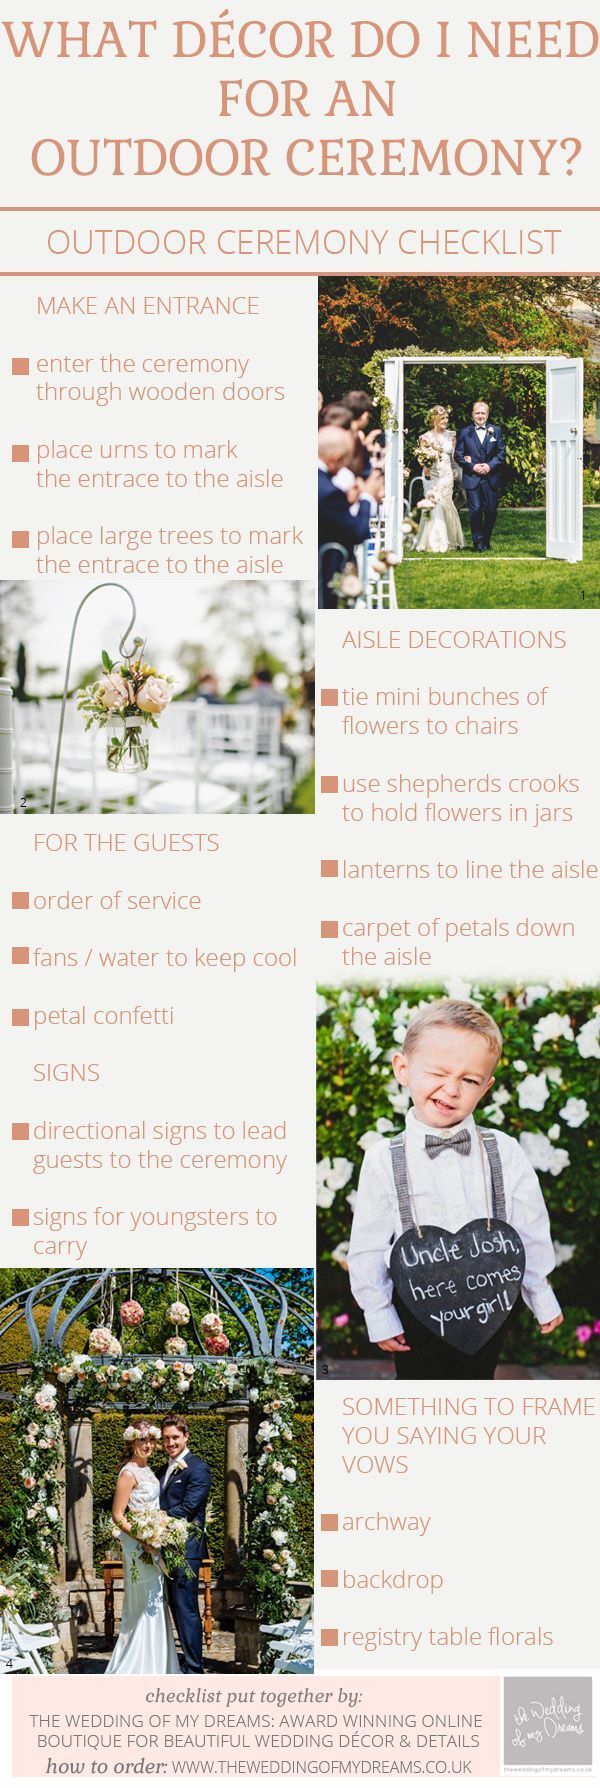 wedding planning checklist spreadsheet free%0A Best     Wedding checklist uk ideas on Pinterest   Wedding planner  Wedding  planner uk and Wedding planning